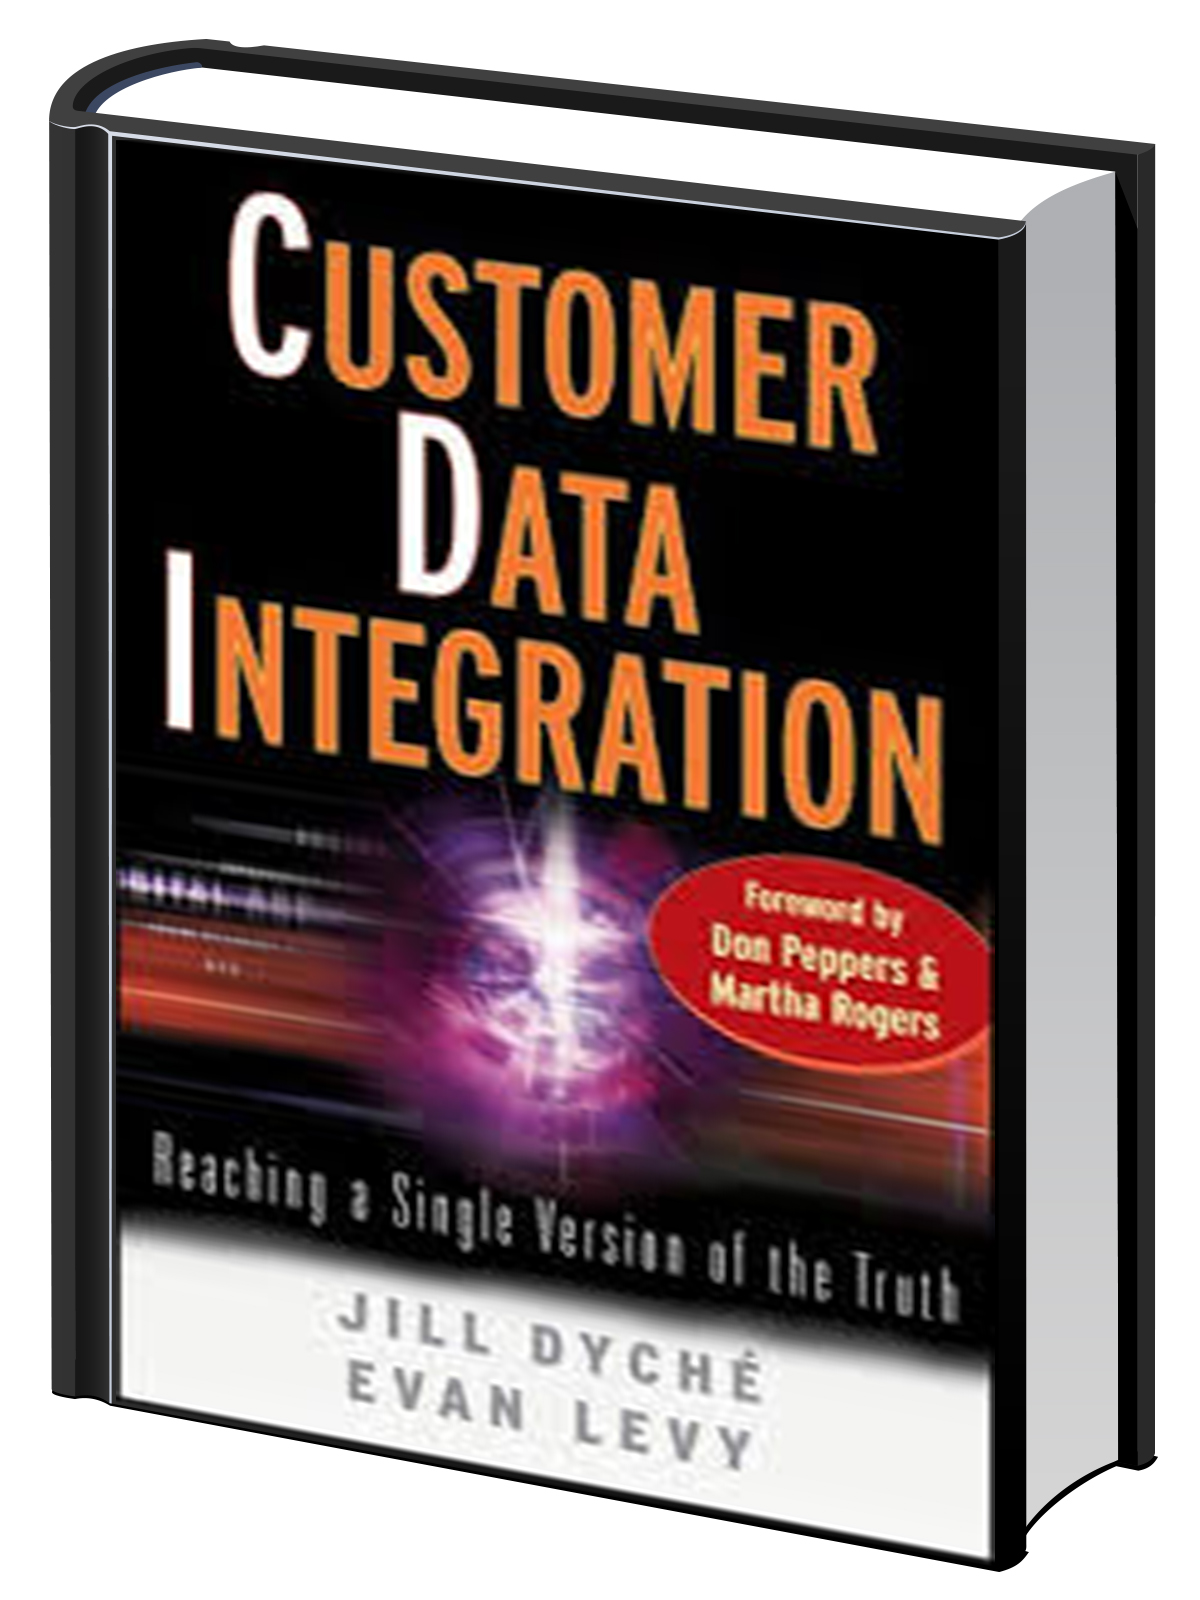 Customer Data Integration book cover